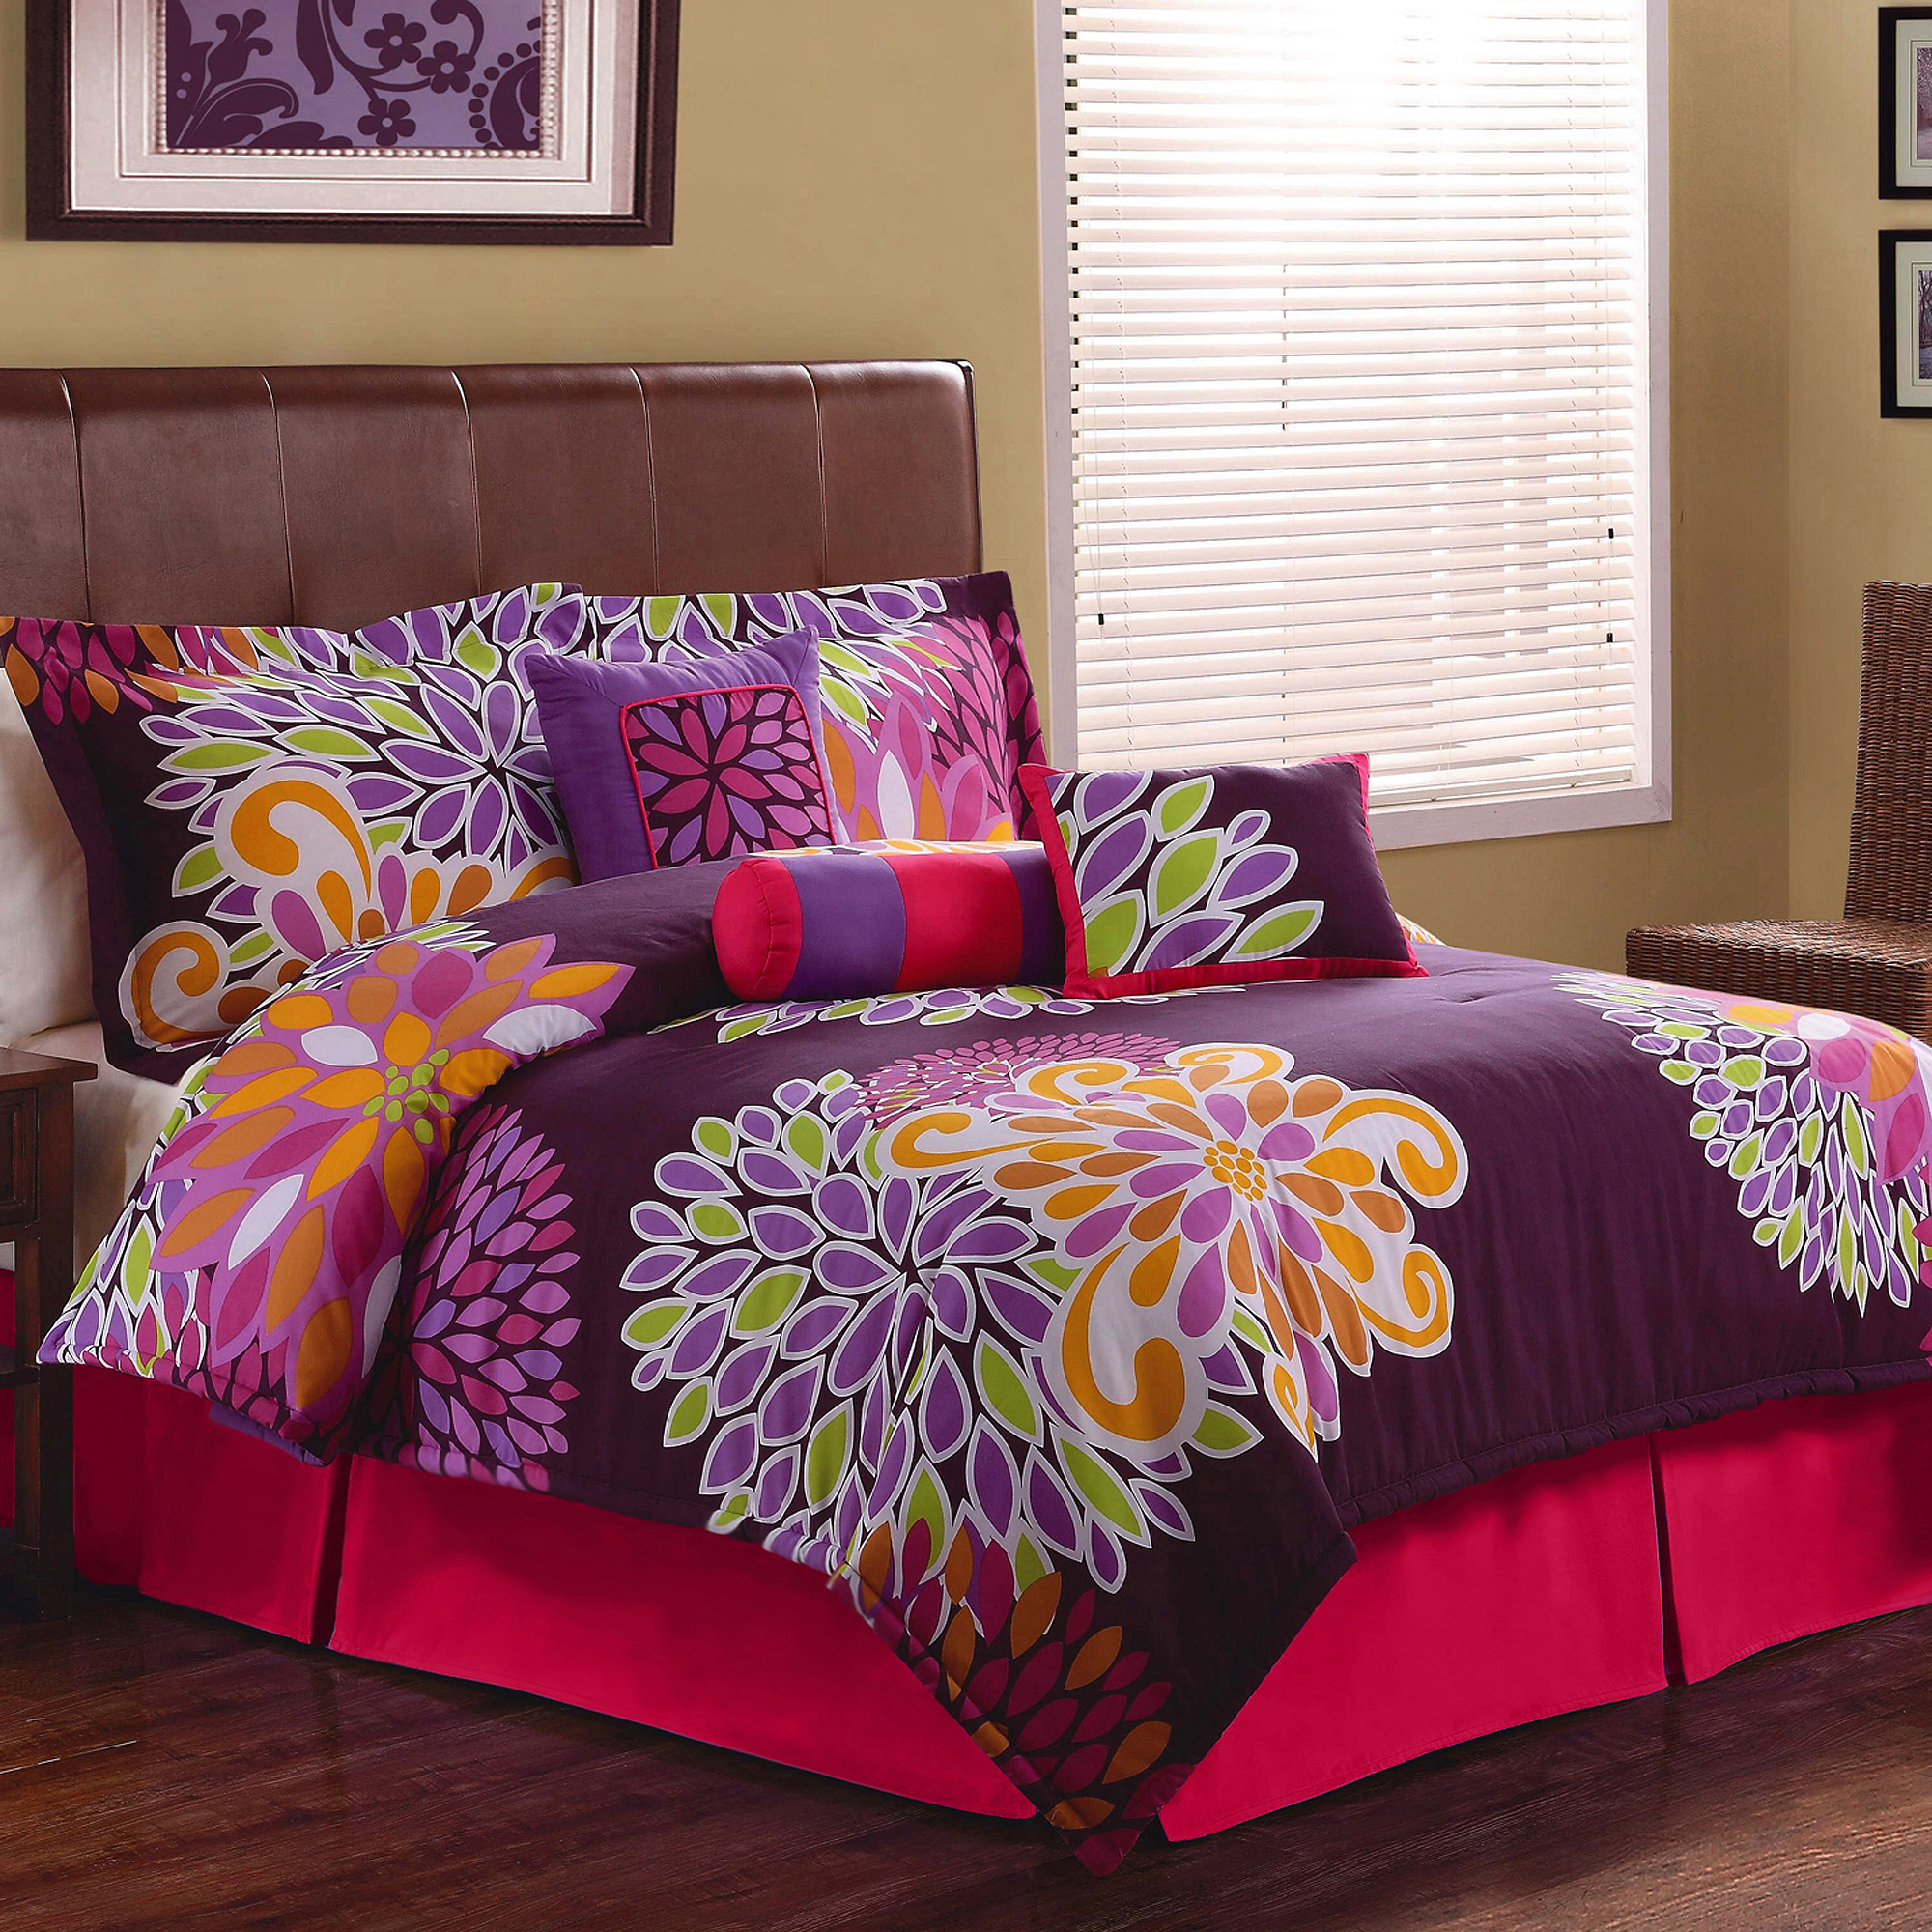 Purple Comforter Sets | Full Size Purple Comforter Sets | Purple Comforter Sets Full Size